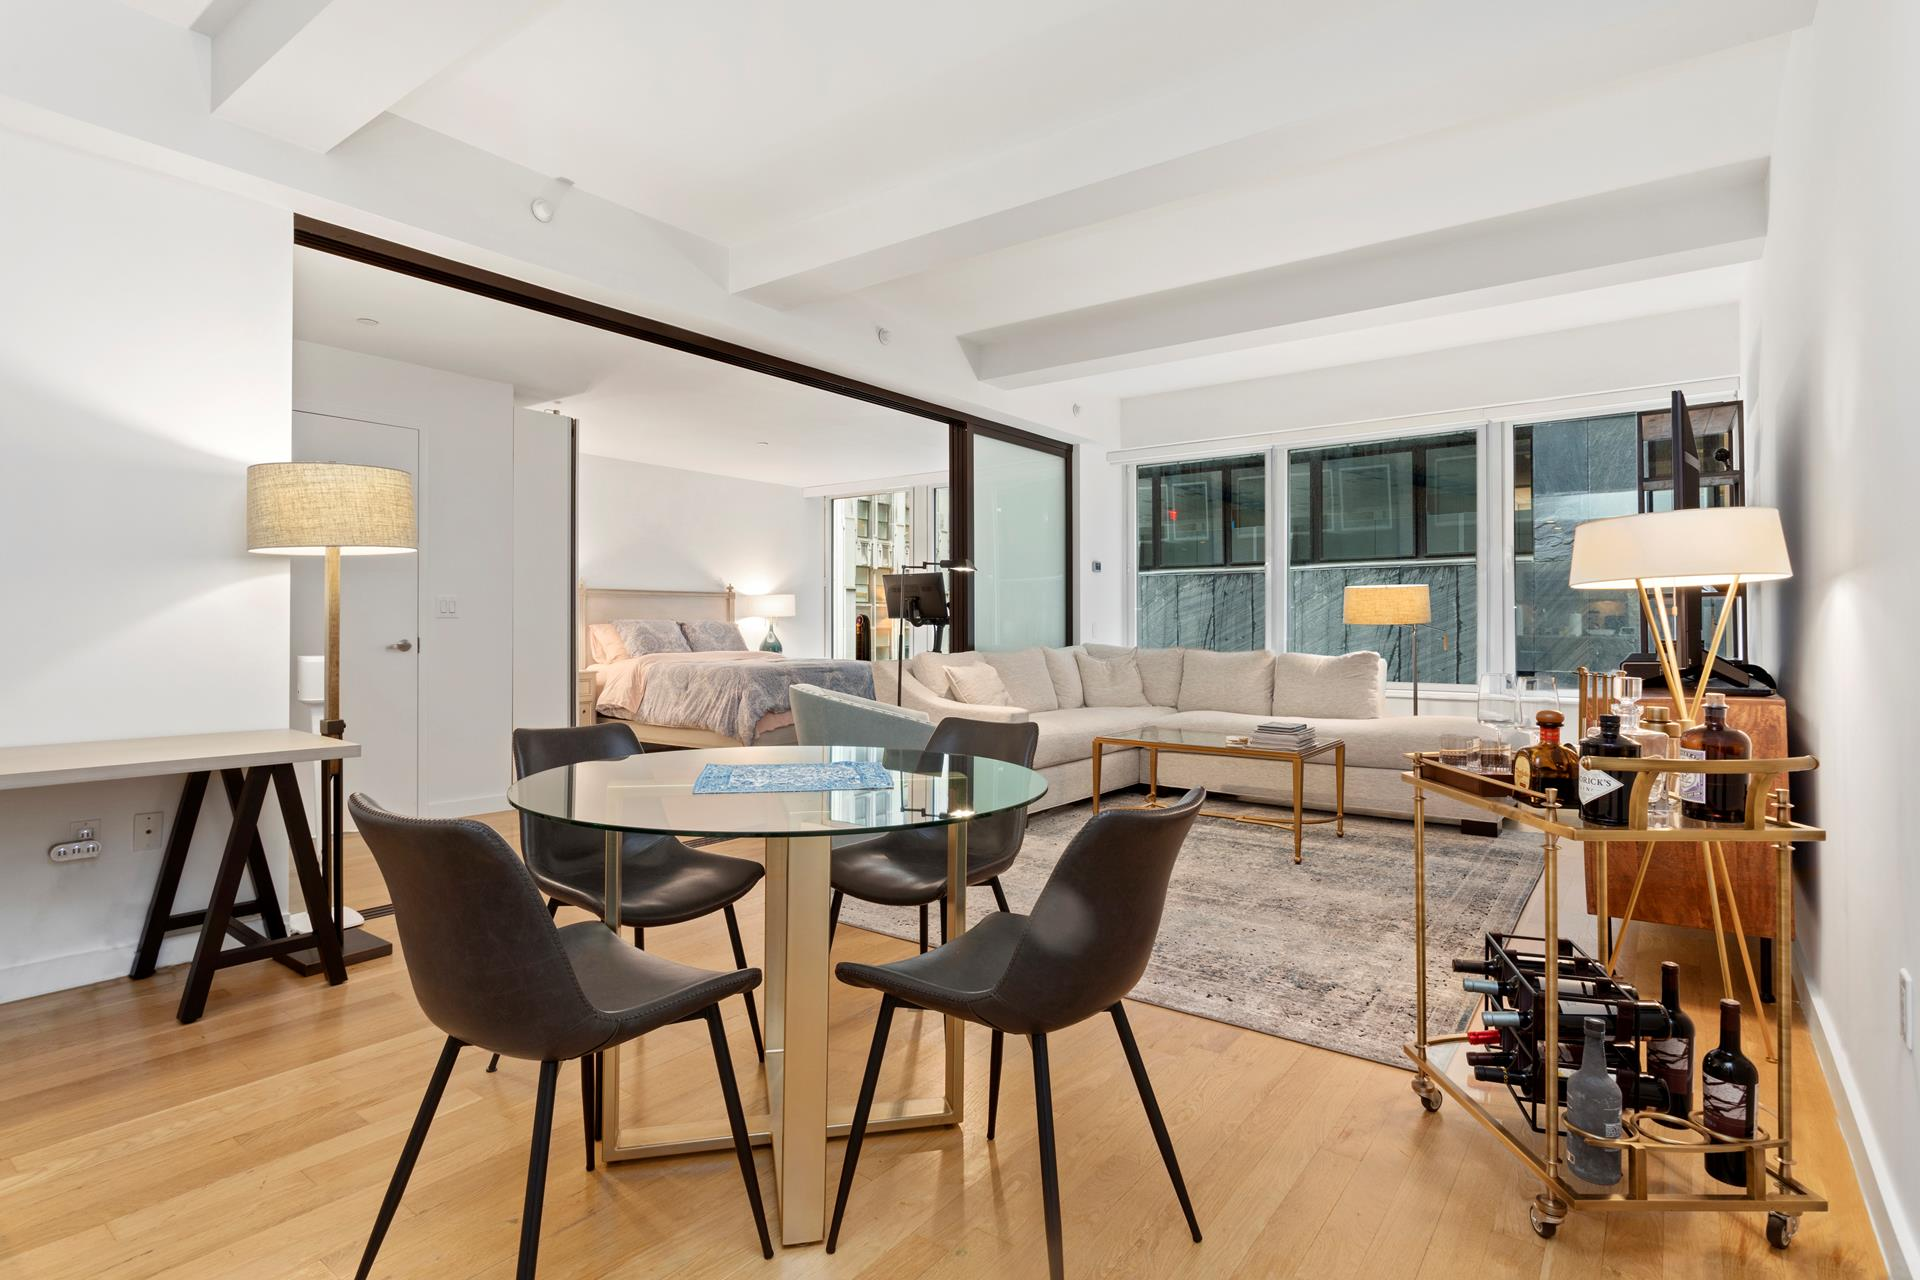 A stunning and functional condo with immaculate finishes and an abundance of natural light, this convertible 2-bedroom, 2-bathroom home sits in the heart of the Financial District. Features of this 1,072 sq. ft. apartment include white oak hardwood floors, ceilings over 9-ft, extra-large double-paned windows, and a large home office, custom black out shades in the master, motorized shades in the living room and a modern open plan layout. This home is incredible for those seeking a large loft space with bedrooms! The gourmet open kitchen is a masterpiece and is outfitted with stainless steel top of the line appliances, Liebherr refrigerator, sleek white lacquer kitchen cabinets and quartz countertops, plus a large island including dishwasher and double-depth sink. It opens to a great room with space to entertain and relax. Both the master bedroom and second bedroom offer generous amounts of space that have been fitted high quality sliding doors in dark stained wood and translucent fiberglass. The master bedroom suite was reconfigured to open directly into the living room, maximizing the width of the entire apartment and expansive set of windows. It has upgraded finishes, which include a custom built-in storage and a walk-in closet. The master ensuite bath features a dual vanity, as well as Kohler and Watermark fixtures, Toto toilets, and classic subway tiling. The oversized bonus room is perfect for a second bedroom, home office, or even a nursery. For convenience and efficiency, the entire home is equipped with a Smart Thermostat system allowing you to control the climate all through a smartphone or tablet at any time. Individual unit washer/dryers are permitted! Amenities are located on the Penthouse-level and include a double-height lounge overlooking a landscaped terrace with an outdoor fireplace and wet bar including a barbeque grill available all year round, a light-filled fitness center, billiards table, and common laundry. The building is excellently maintain